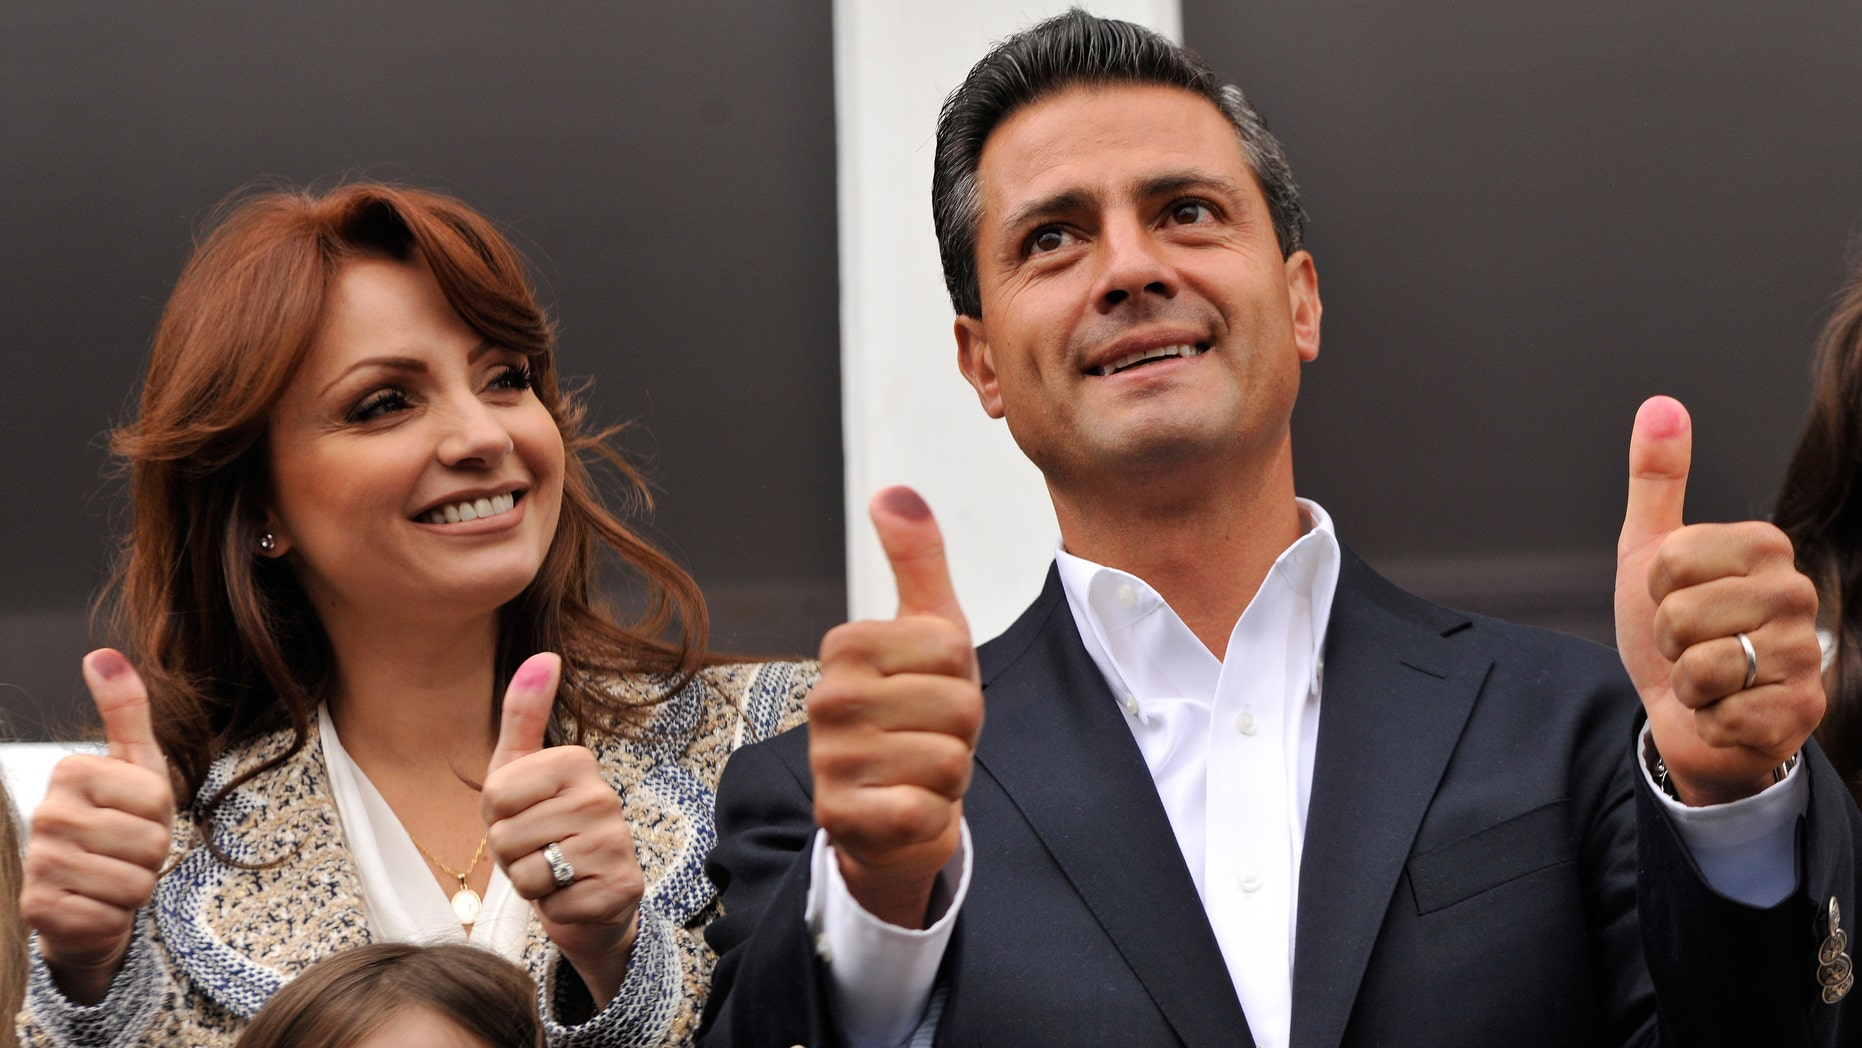 ATLACOMULCO, MEXICO - JULY 1:  Presidential candidate Enrique Pena Nieto of the Institutional Revolutionary Party (PRI), gesutres as he casts his vote with his wife Angelica Rivero de Pena on July 1, 2012 in Atlacomulco, Mexico. Mexicans went to the polls to choose a new president and vote in thousands of state and local posts nationwide. (Photo by Daniel Aguilar/Getty Images)